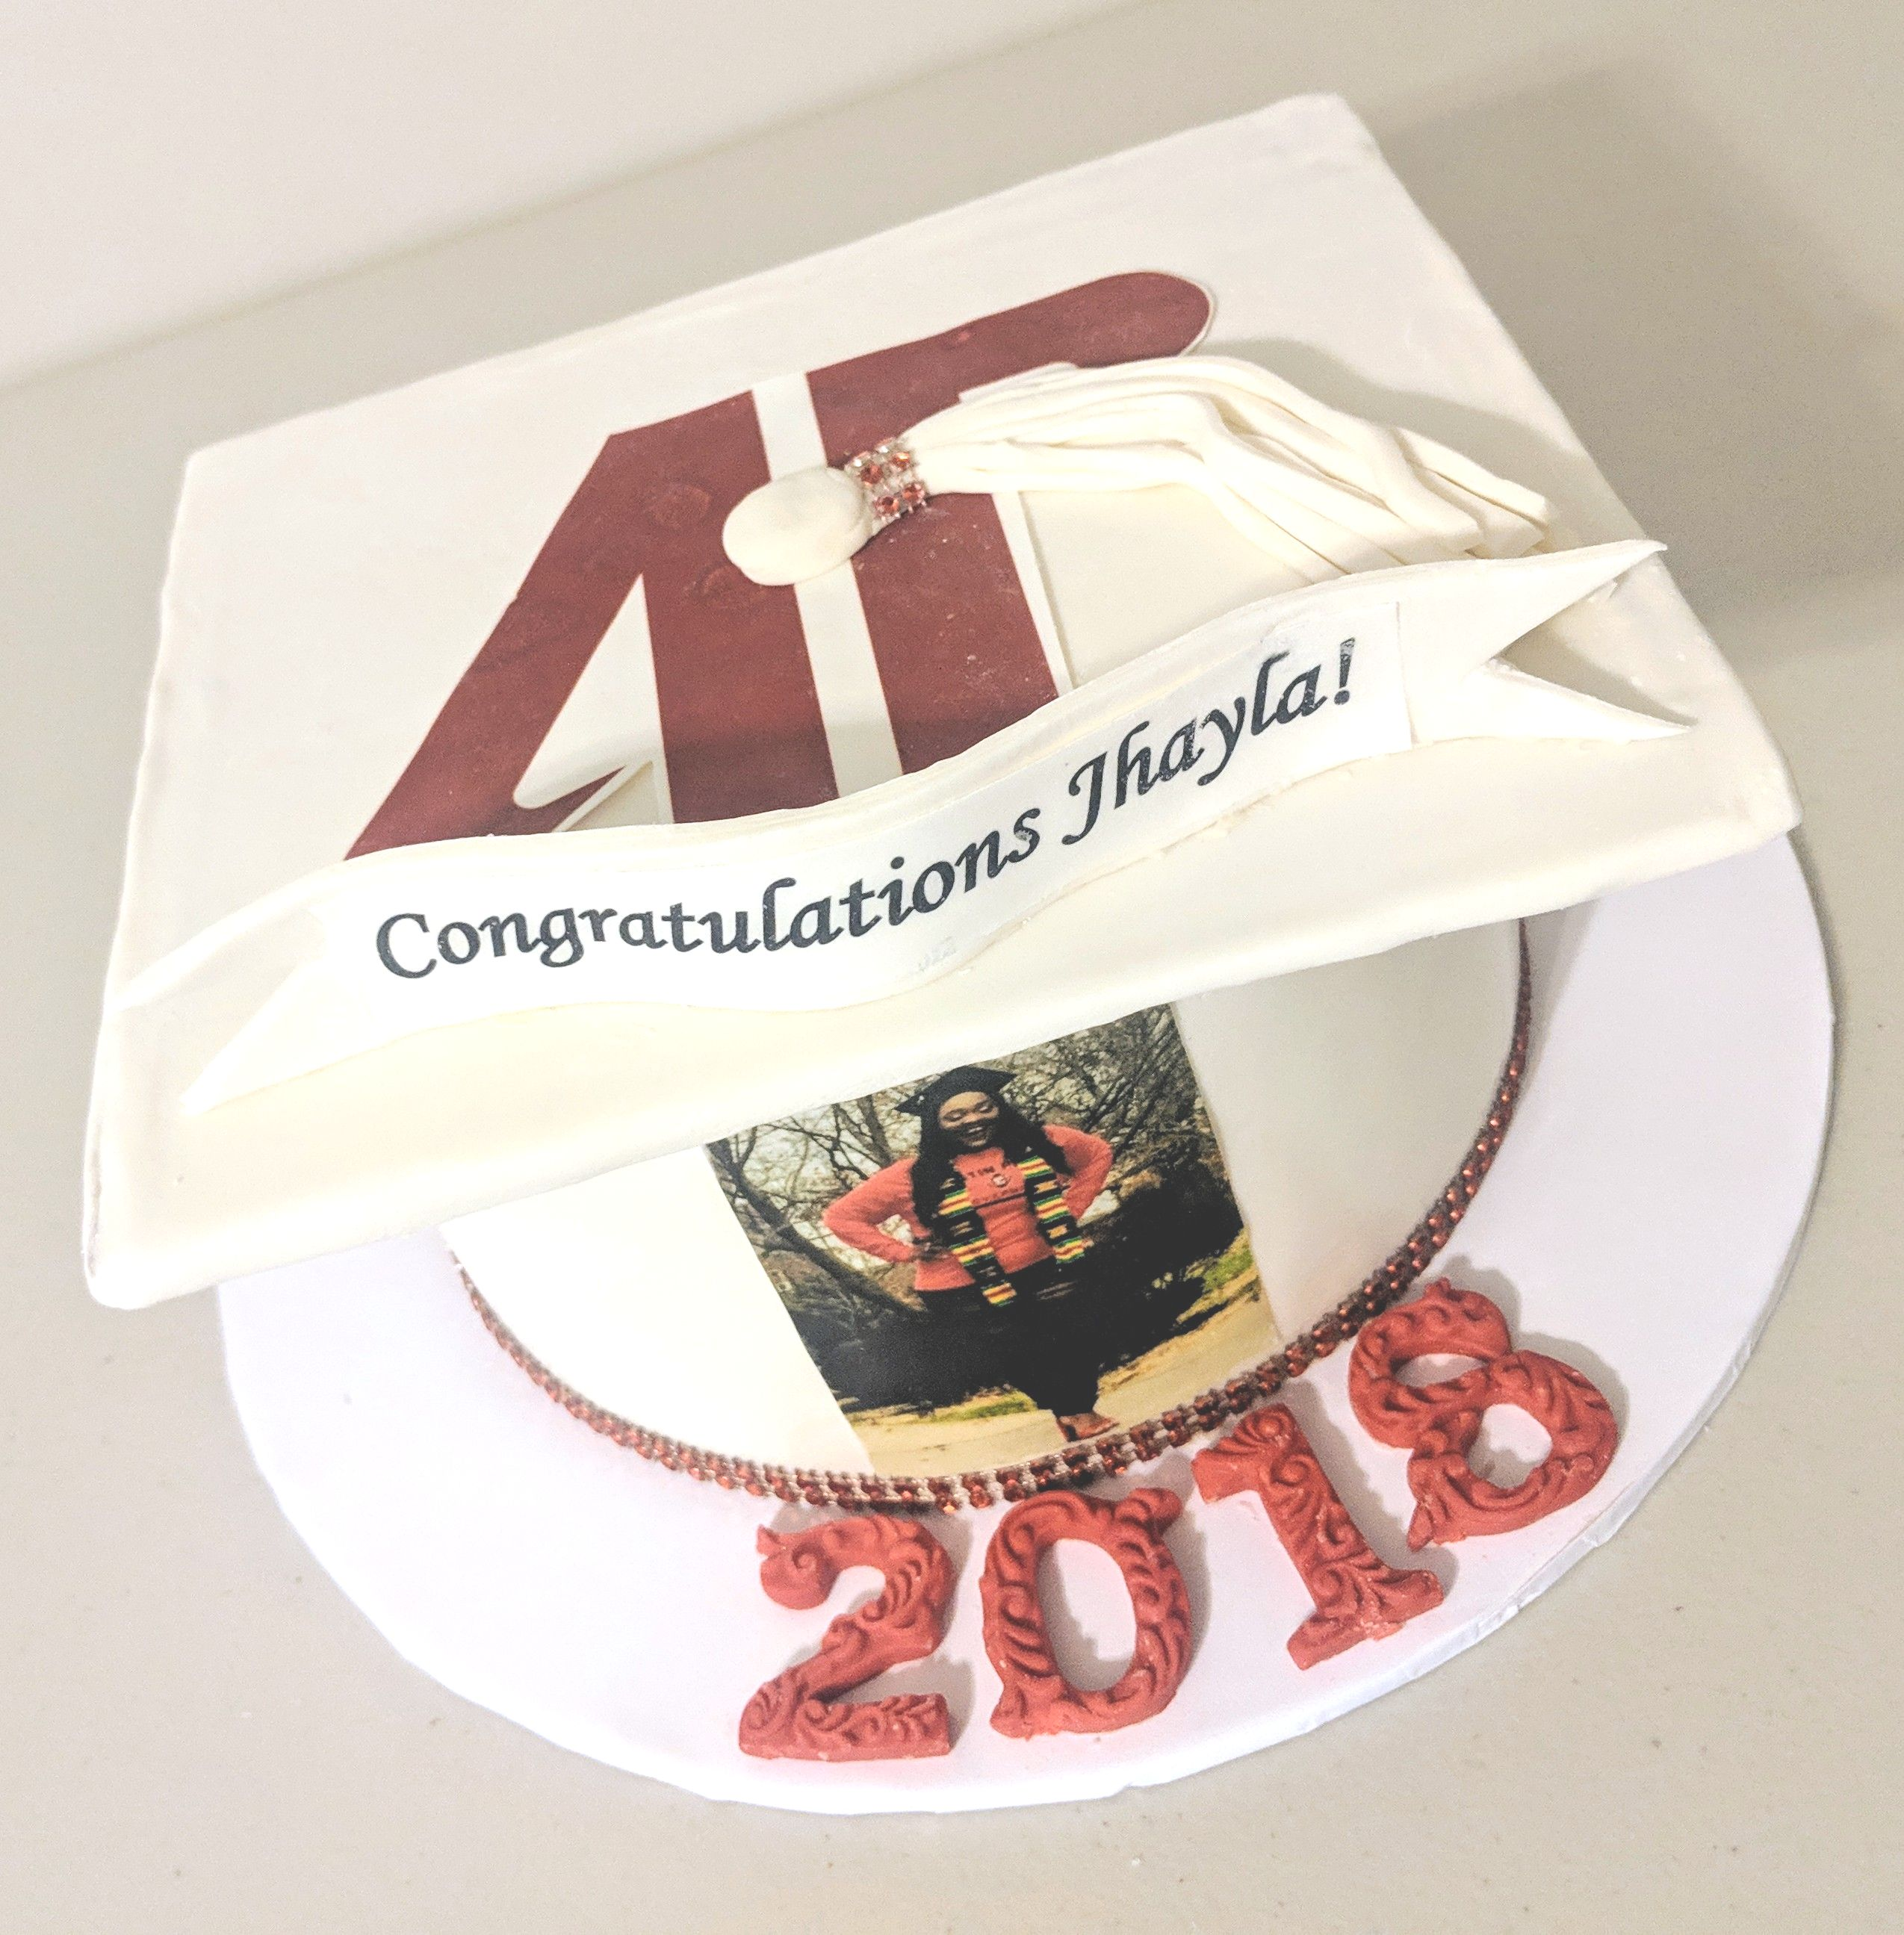 Austin Peay Graduation Cake